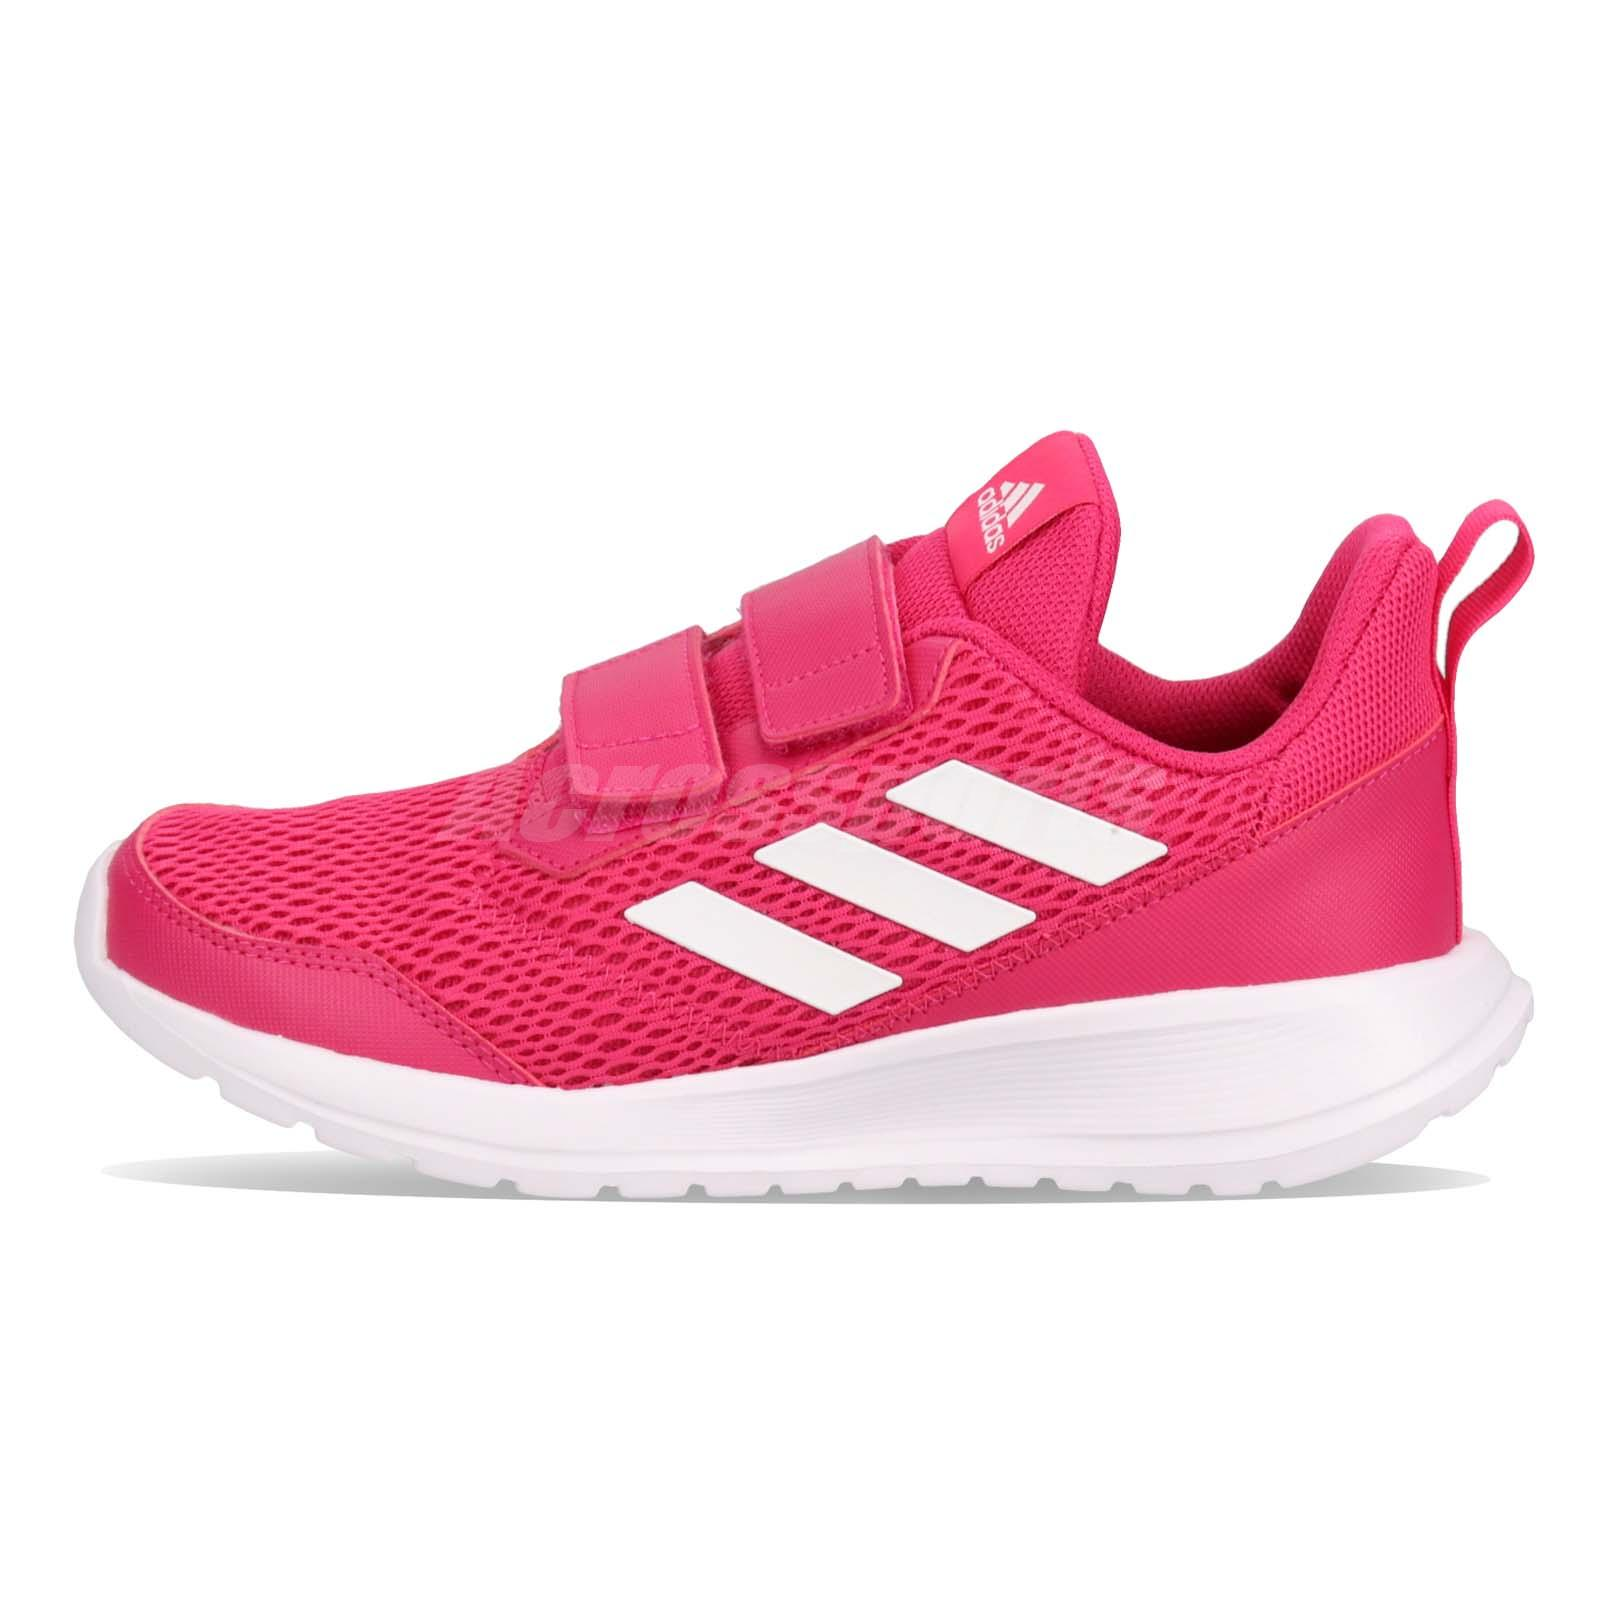 new arrival 28ff2 a5cb2 adidas AltaRun CF K Real Magenta White Kid Junior Preschool Shoes Sneaker  CG6895